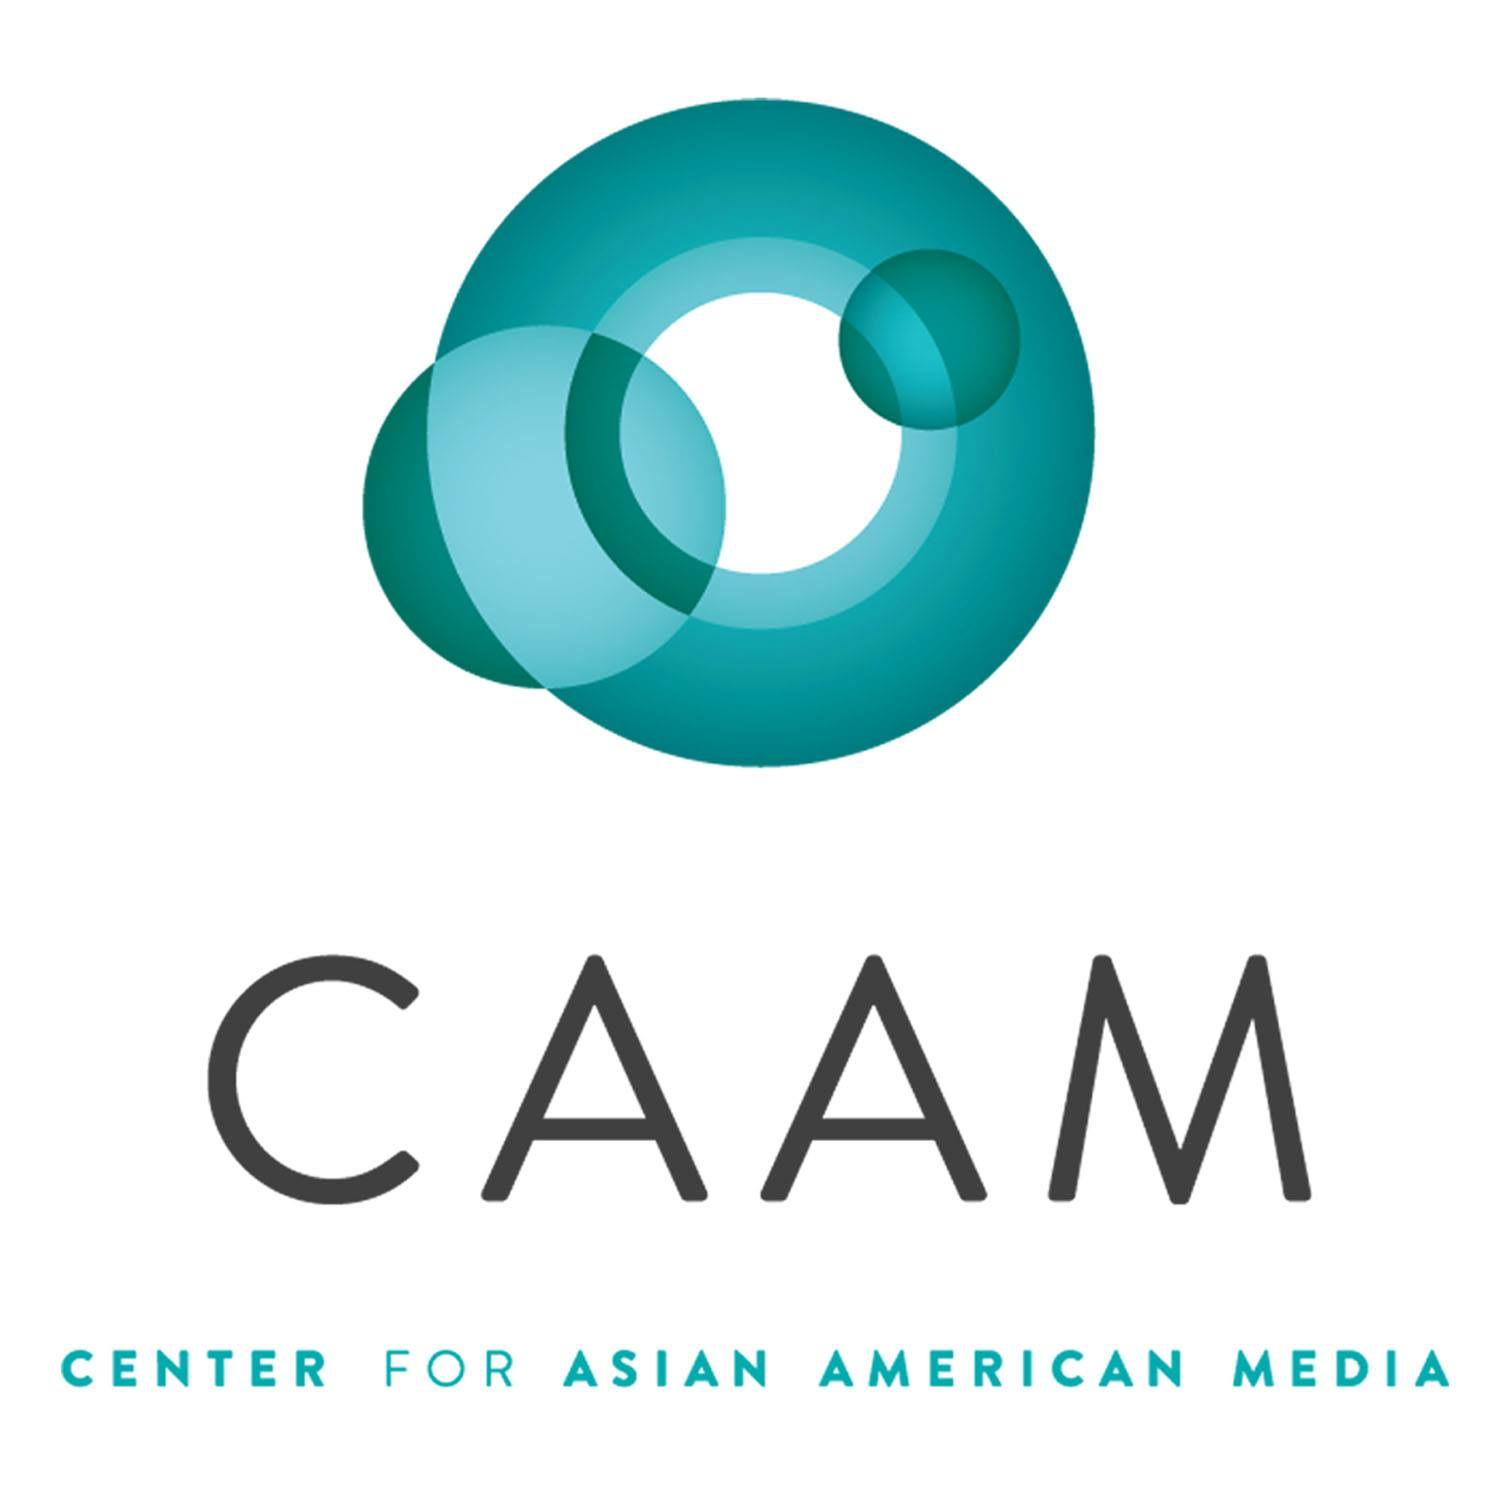 Center For Asian American Media - CAAM